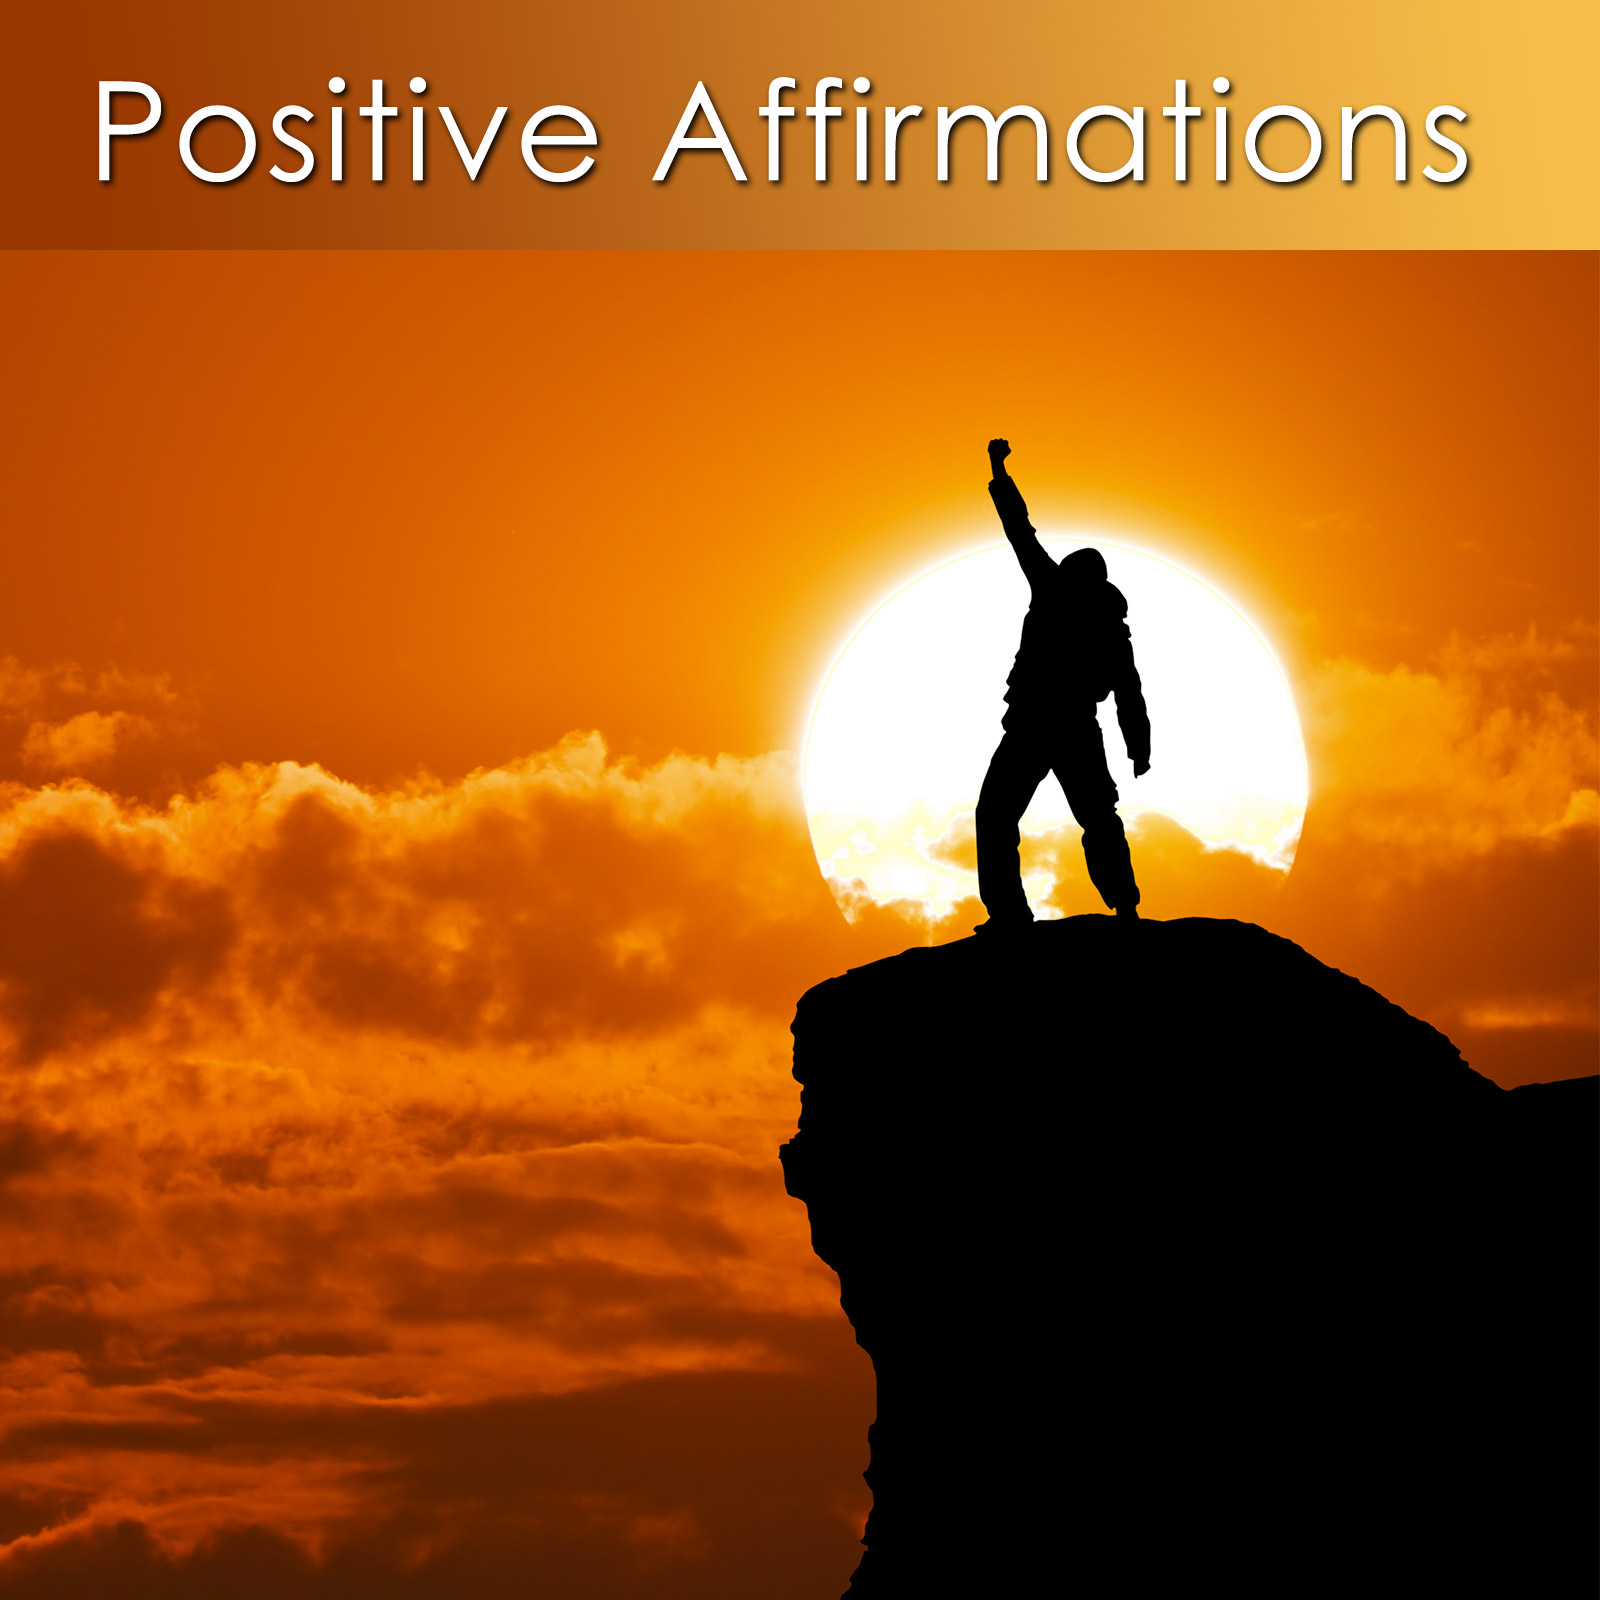 Positive affirmations for holistic outpatient counseling center for drug and alcohol addiction and mental health in Miami, Florida